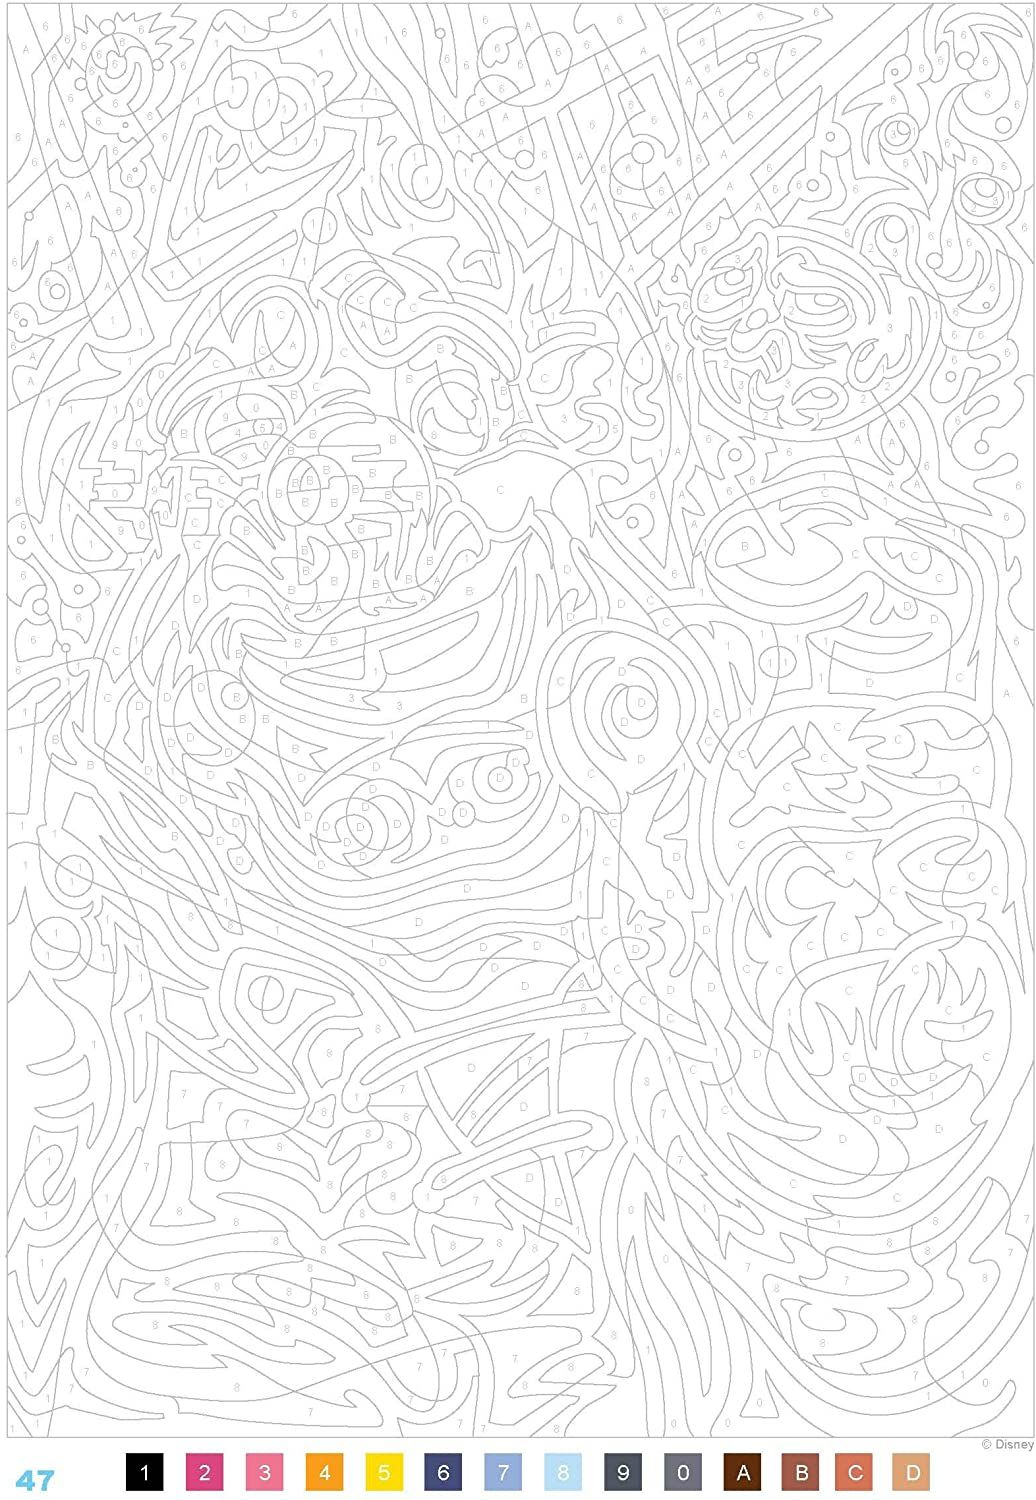 Coloriage Mystere Disney Tome 4 : coloriage, mystere, disney, Color, Number